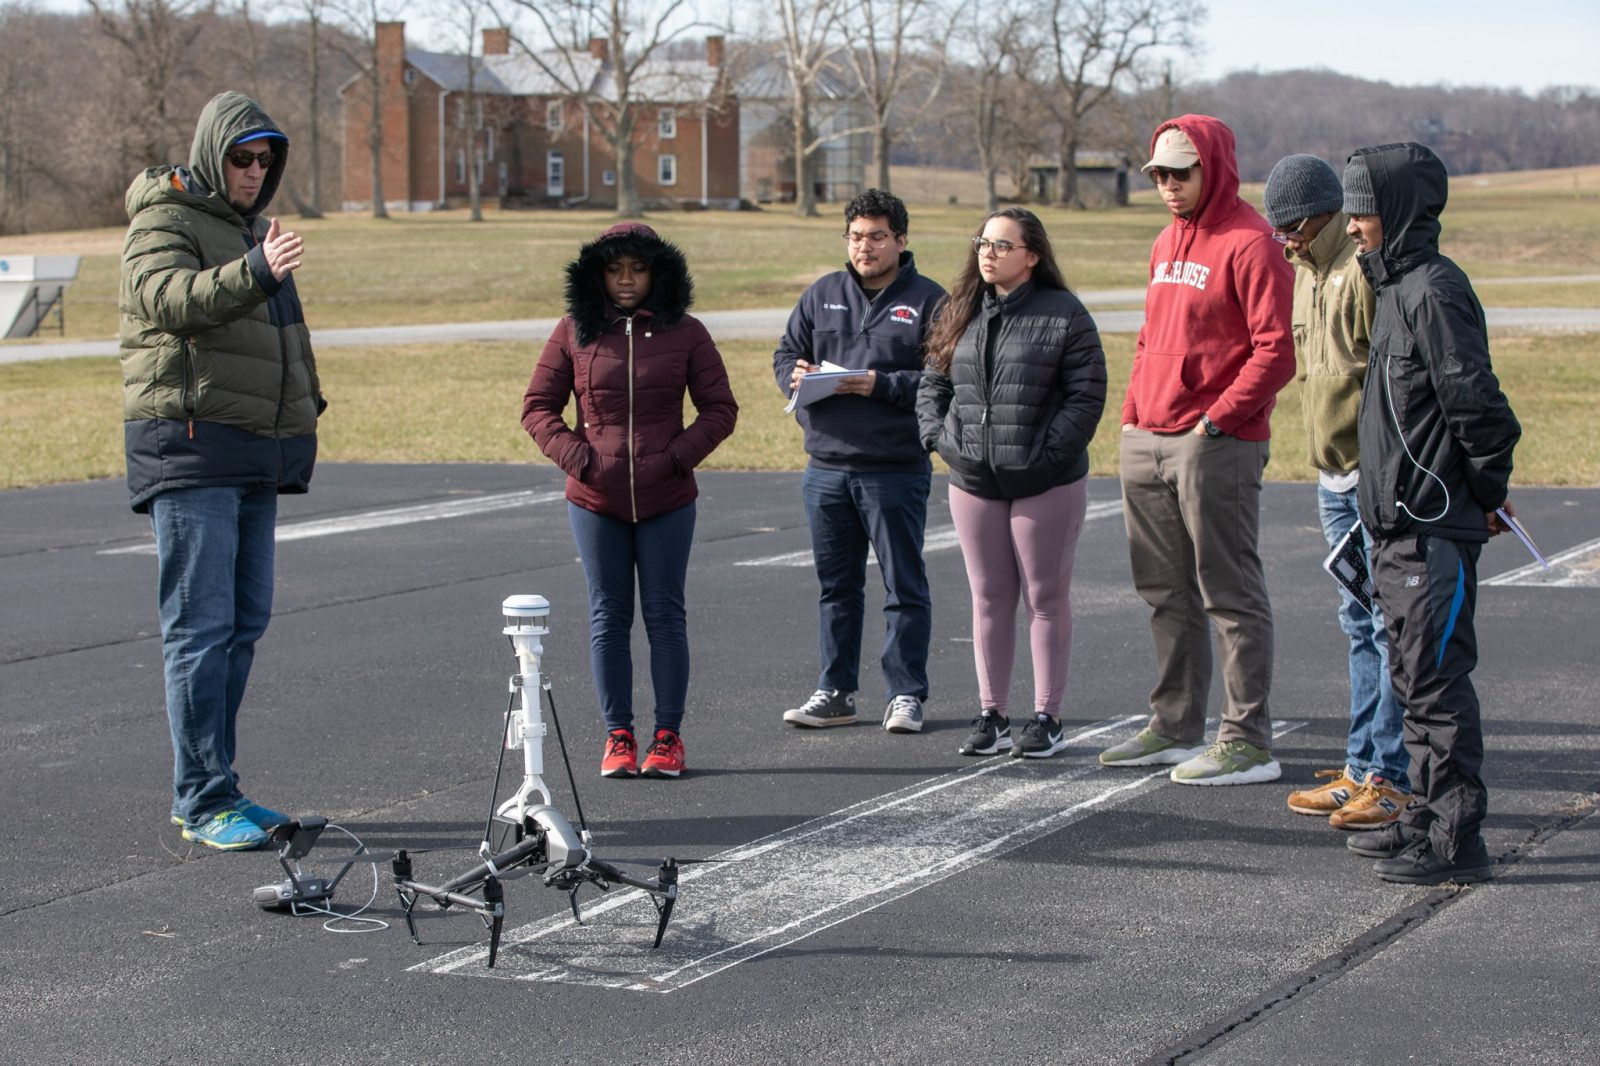 Undergraduates from Bennett, Morehouse, and Hampden Sydney stand on an airstrip at Virginia Tech's Kentland Farm. They look at a drone as David Schmale prepares them for a data sciences mission to monitor wind  Courtesy of Peter Means.